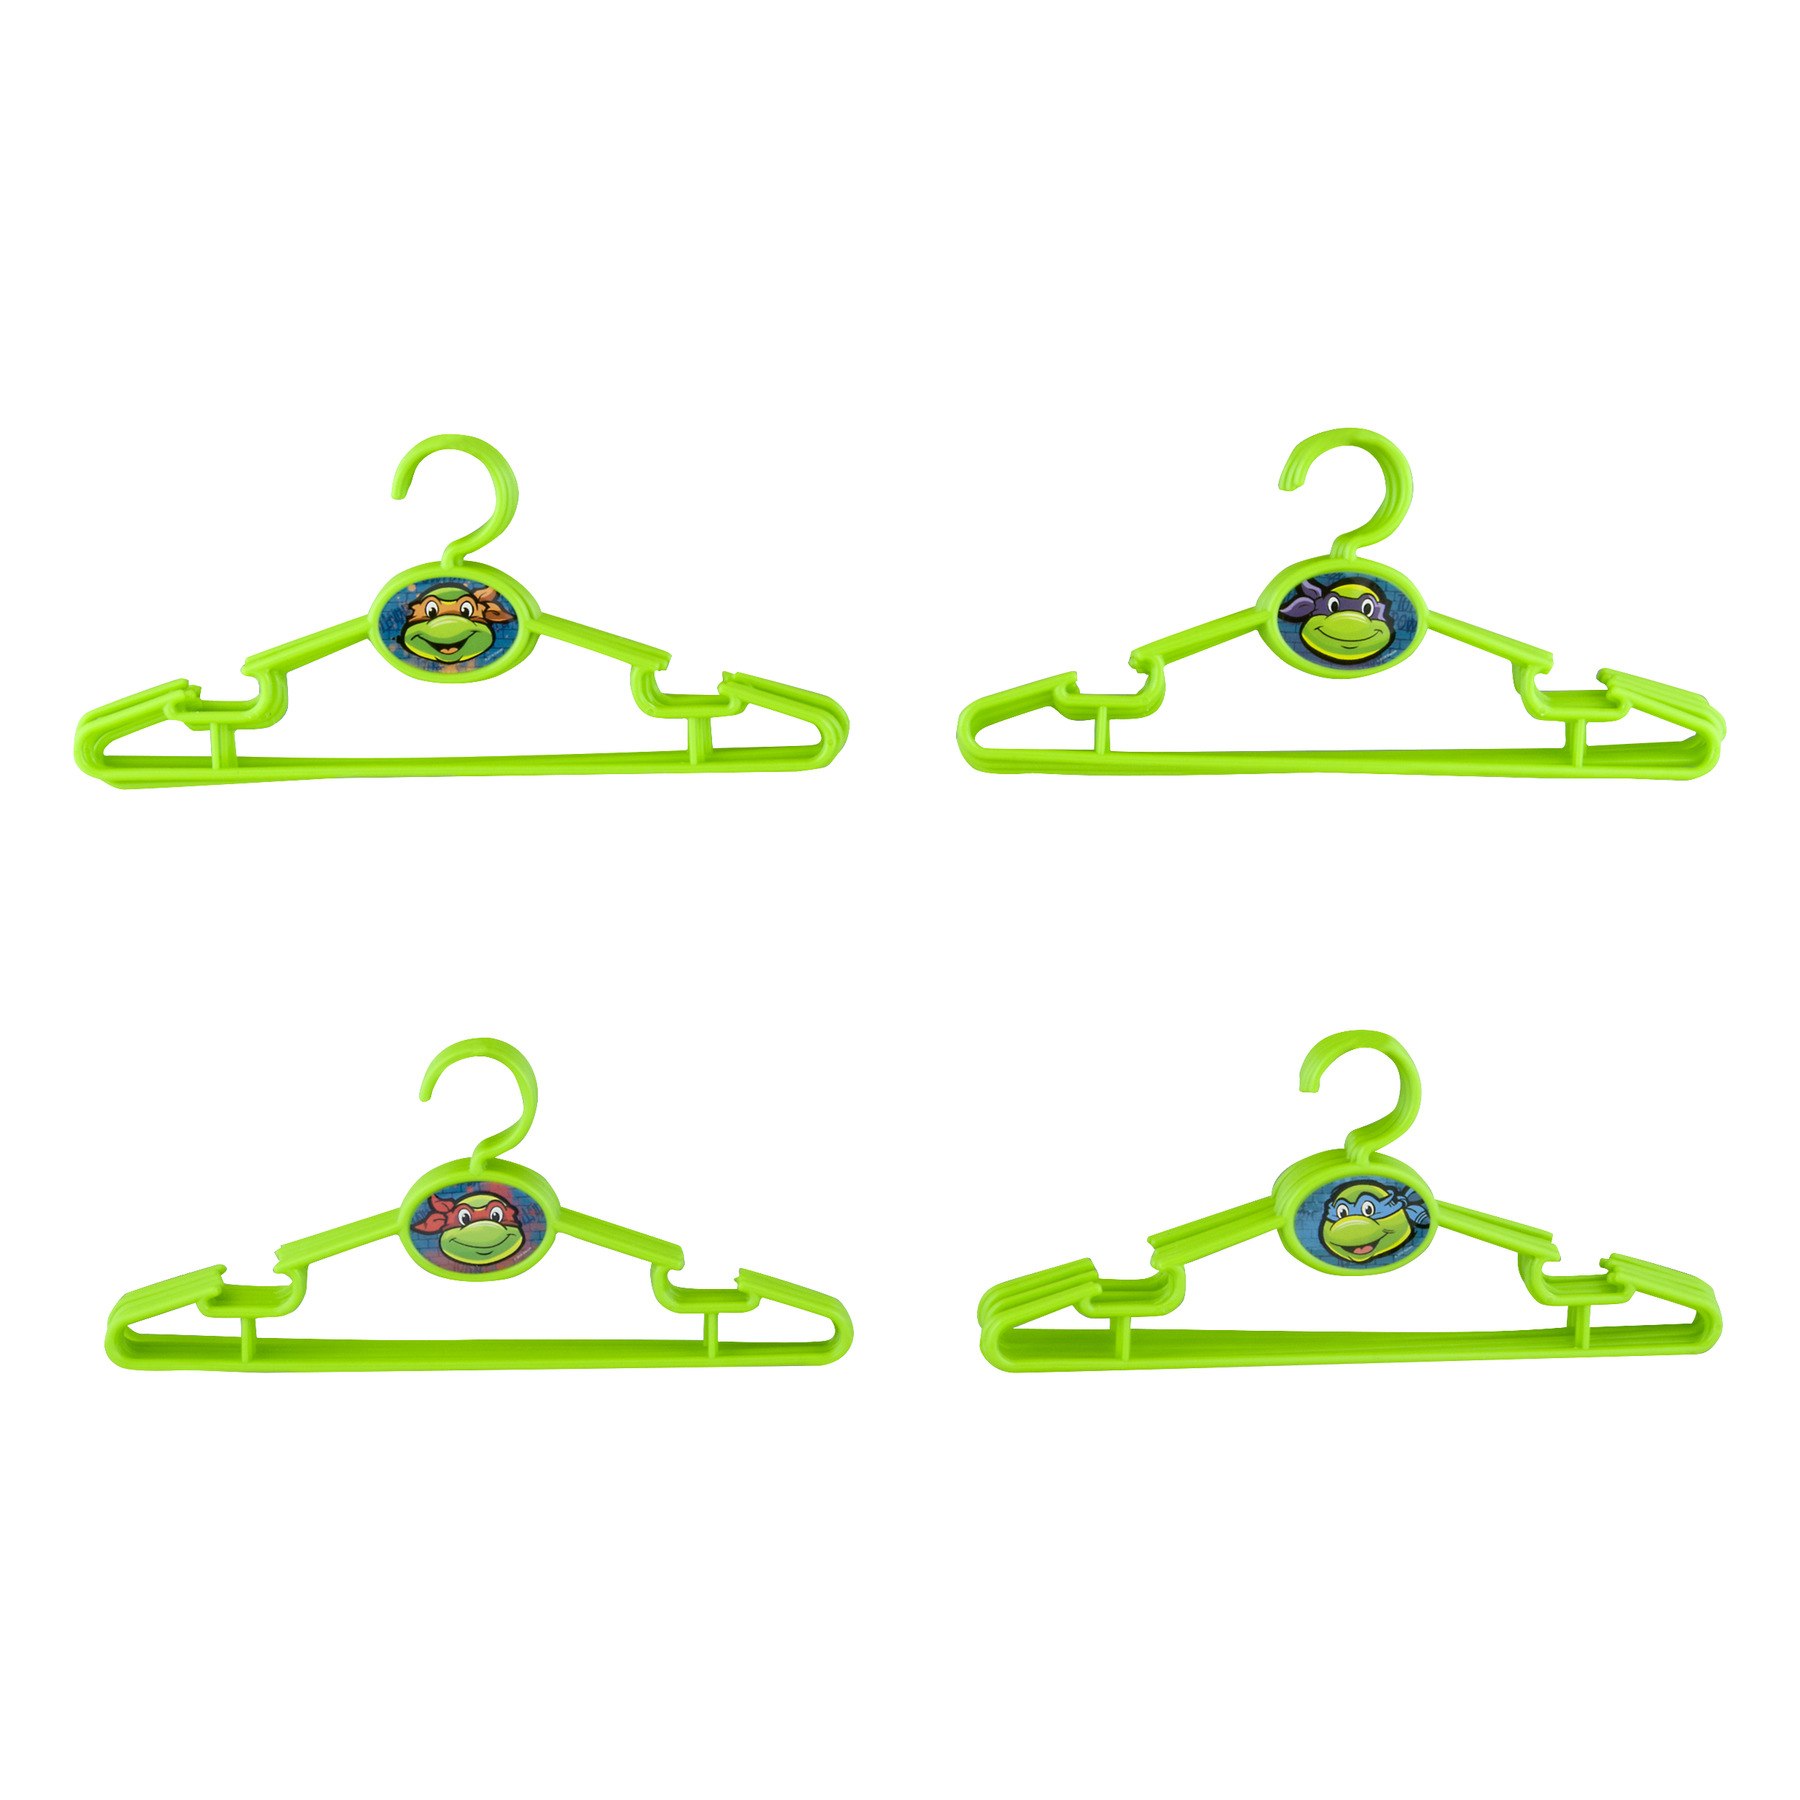 Childrens Hangers Teenage Mutant Ninja Turtle - 30 PK, 30.0 CT